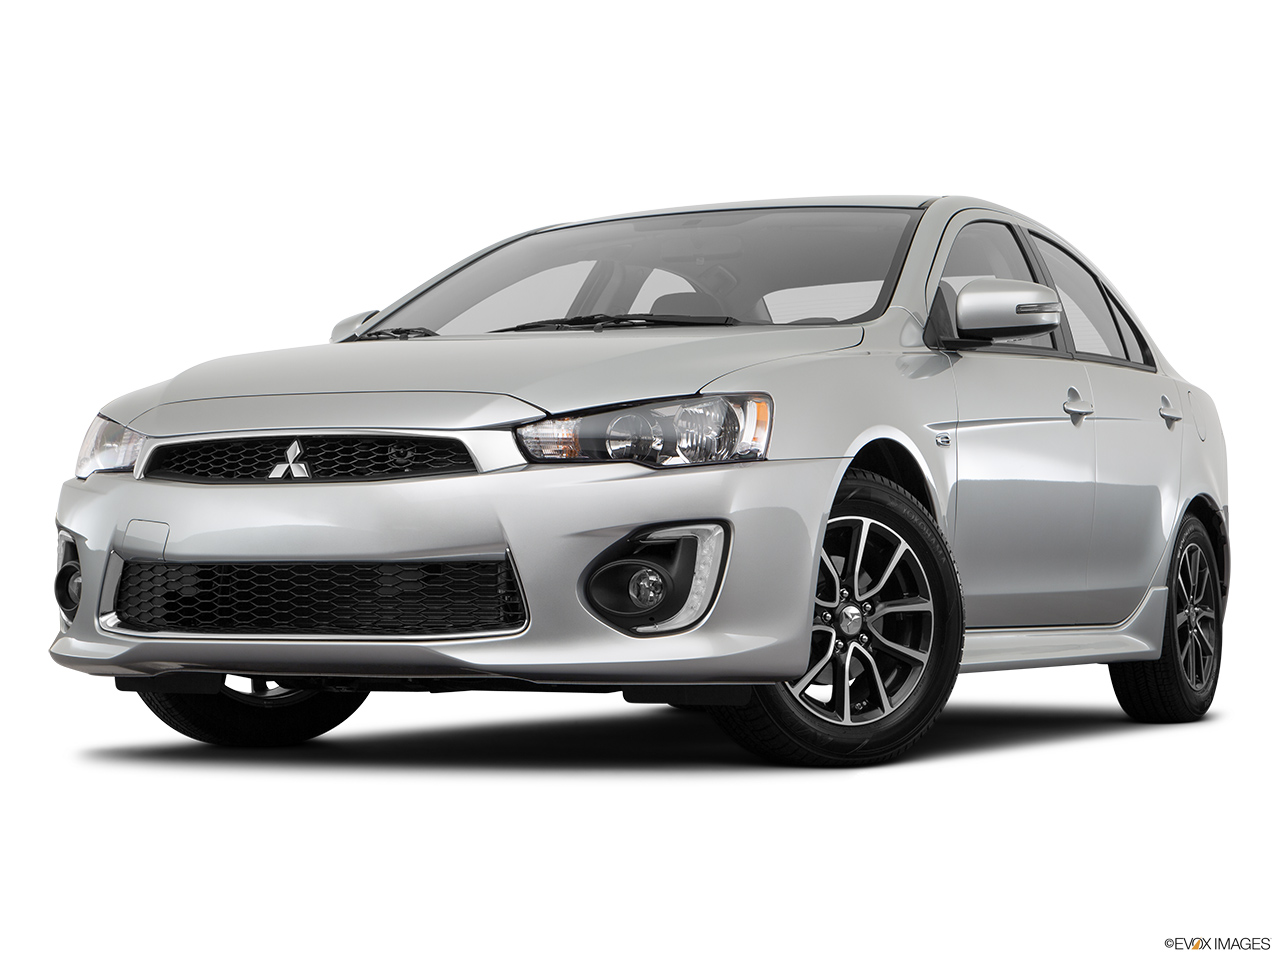 Mitsubishi Lancer EX 2018 2.0L GLX in UAE: New Car Prices, Specs, Reviews & Photos | YallaMotor